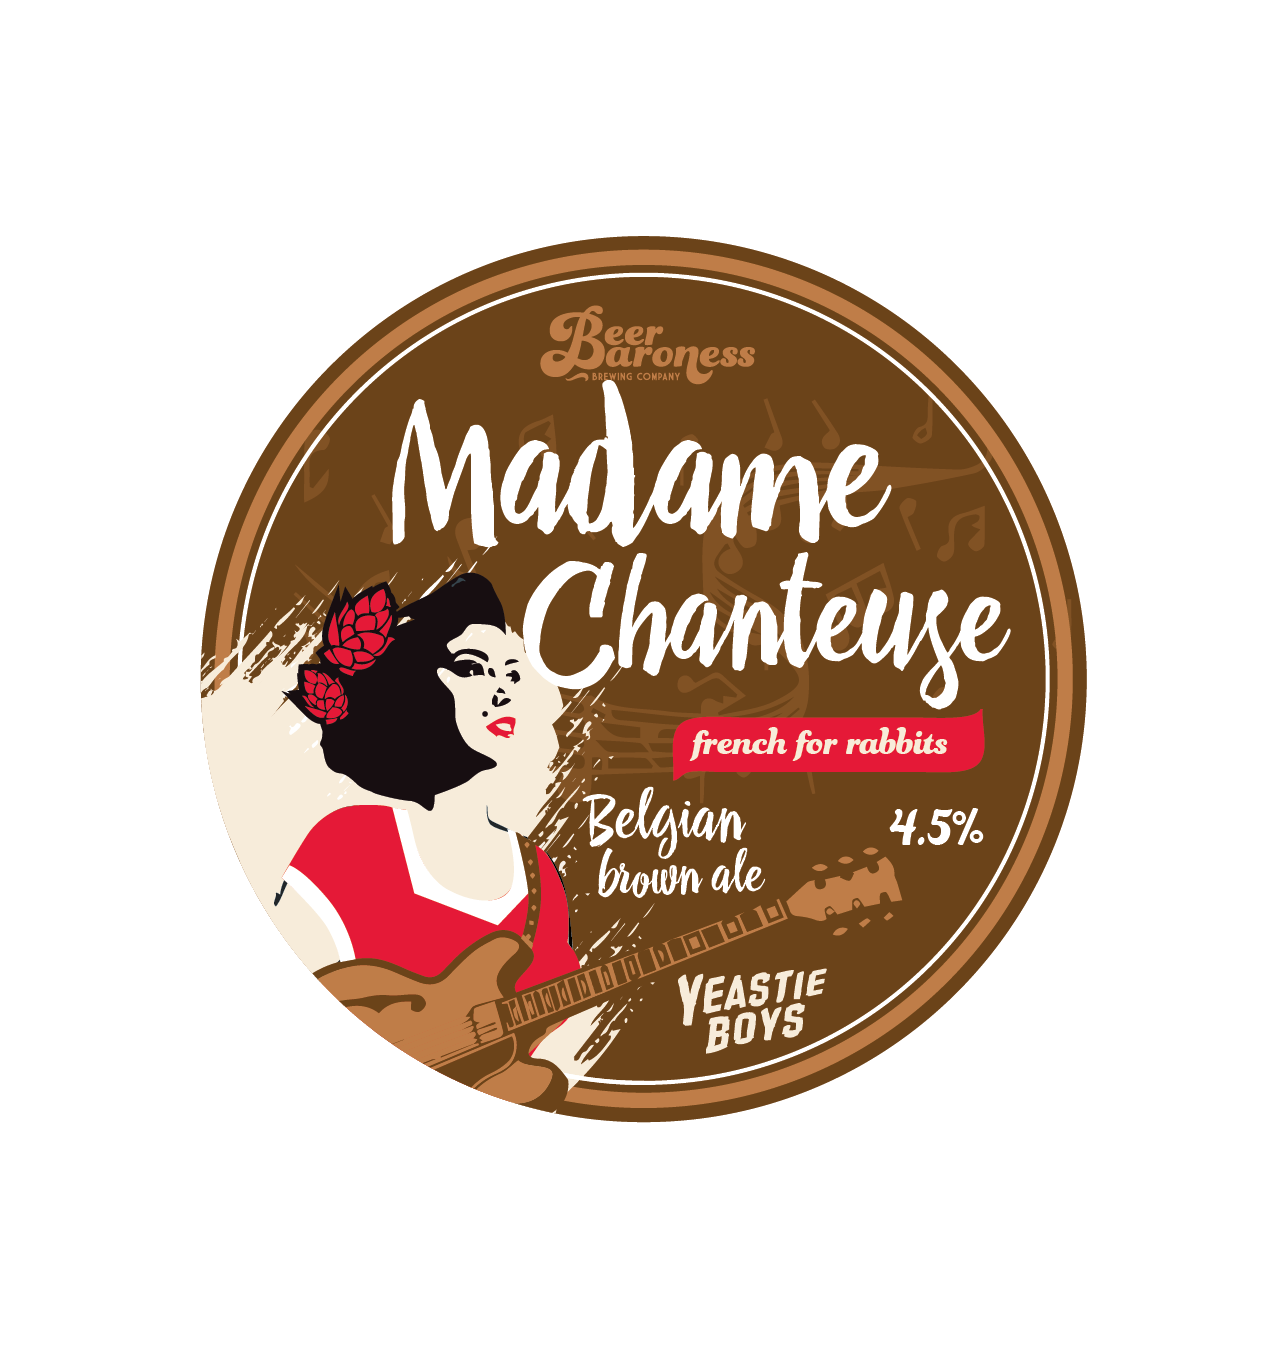 DD004109 Beer Baroness Madame Chanteuse Tap Badge Supply - CROP.png